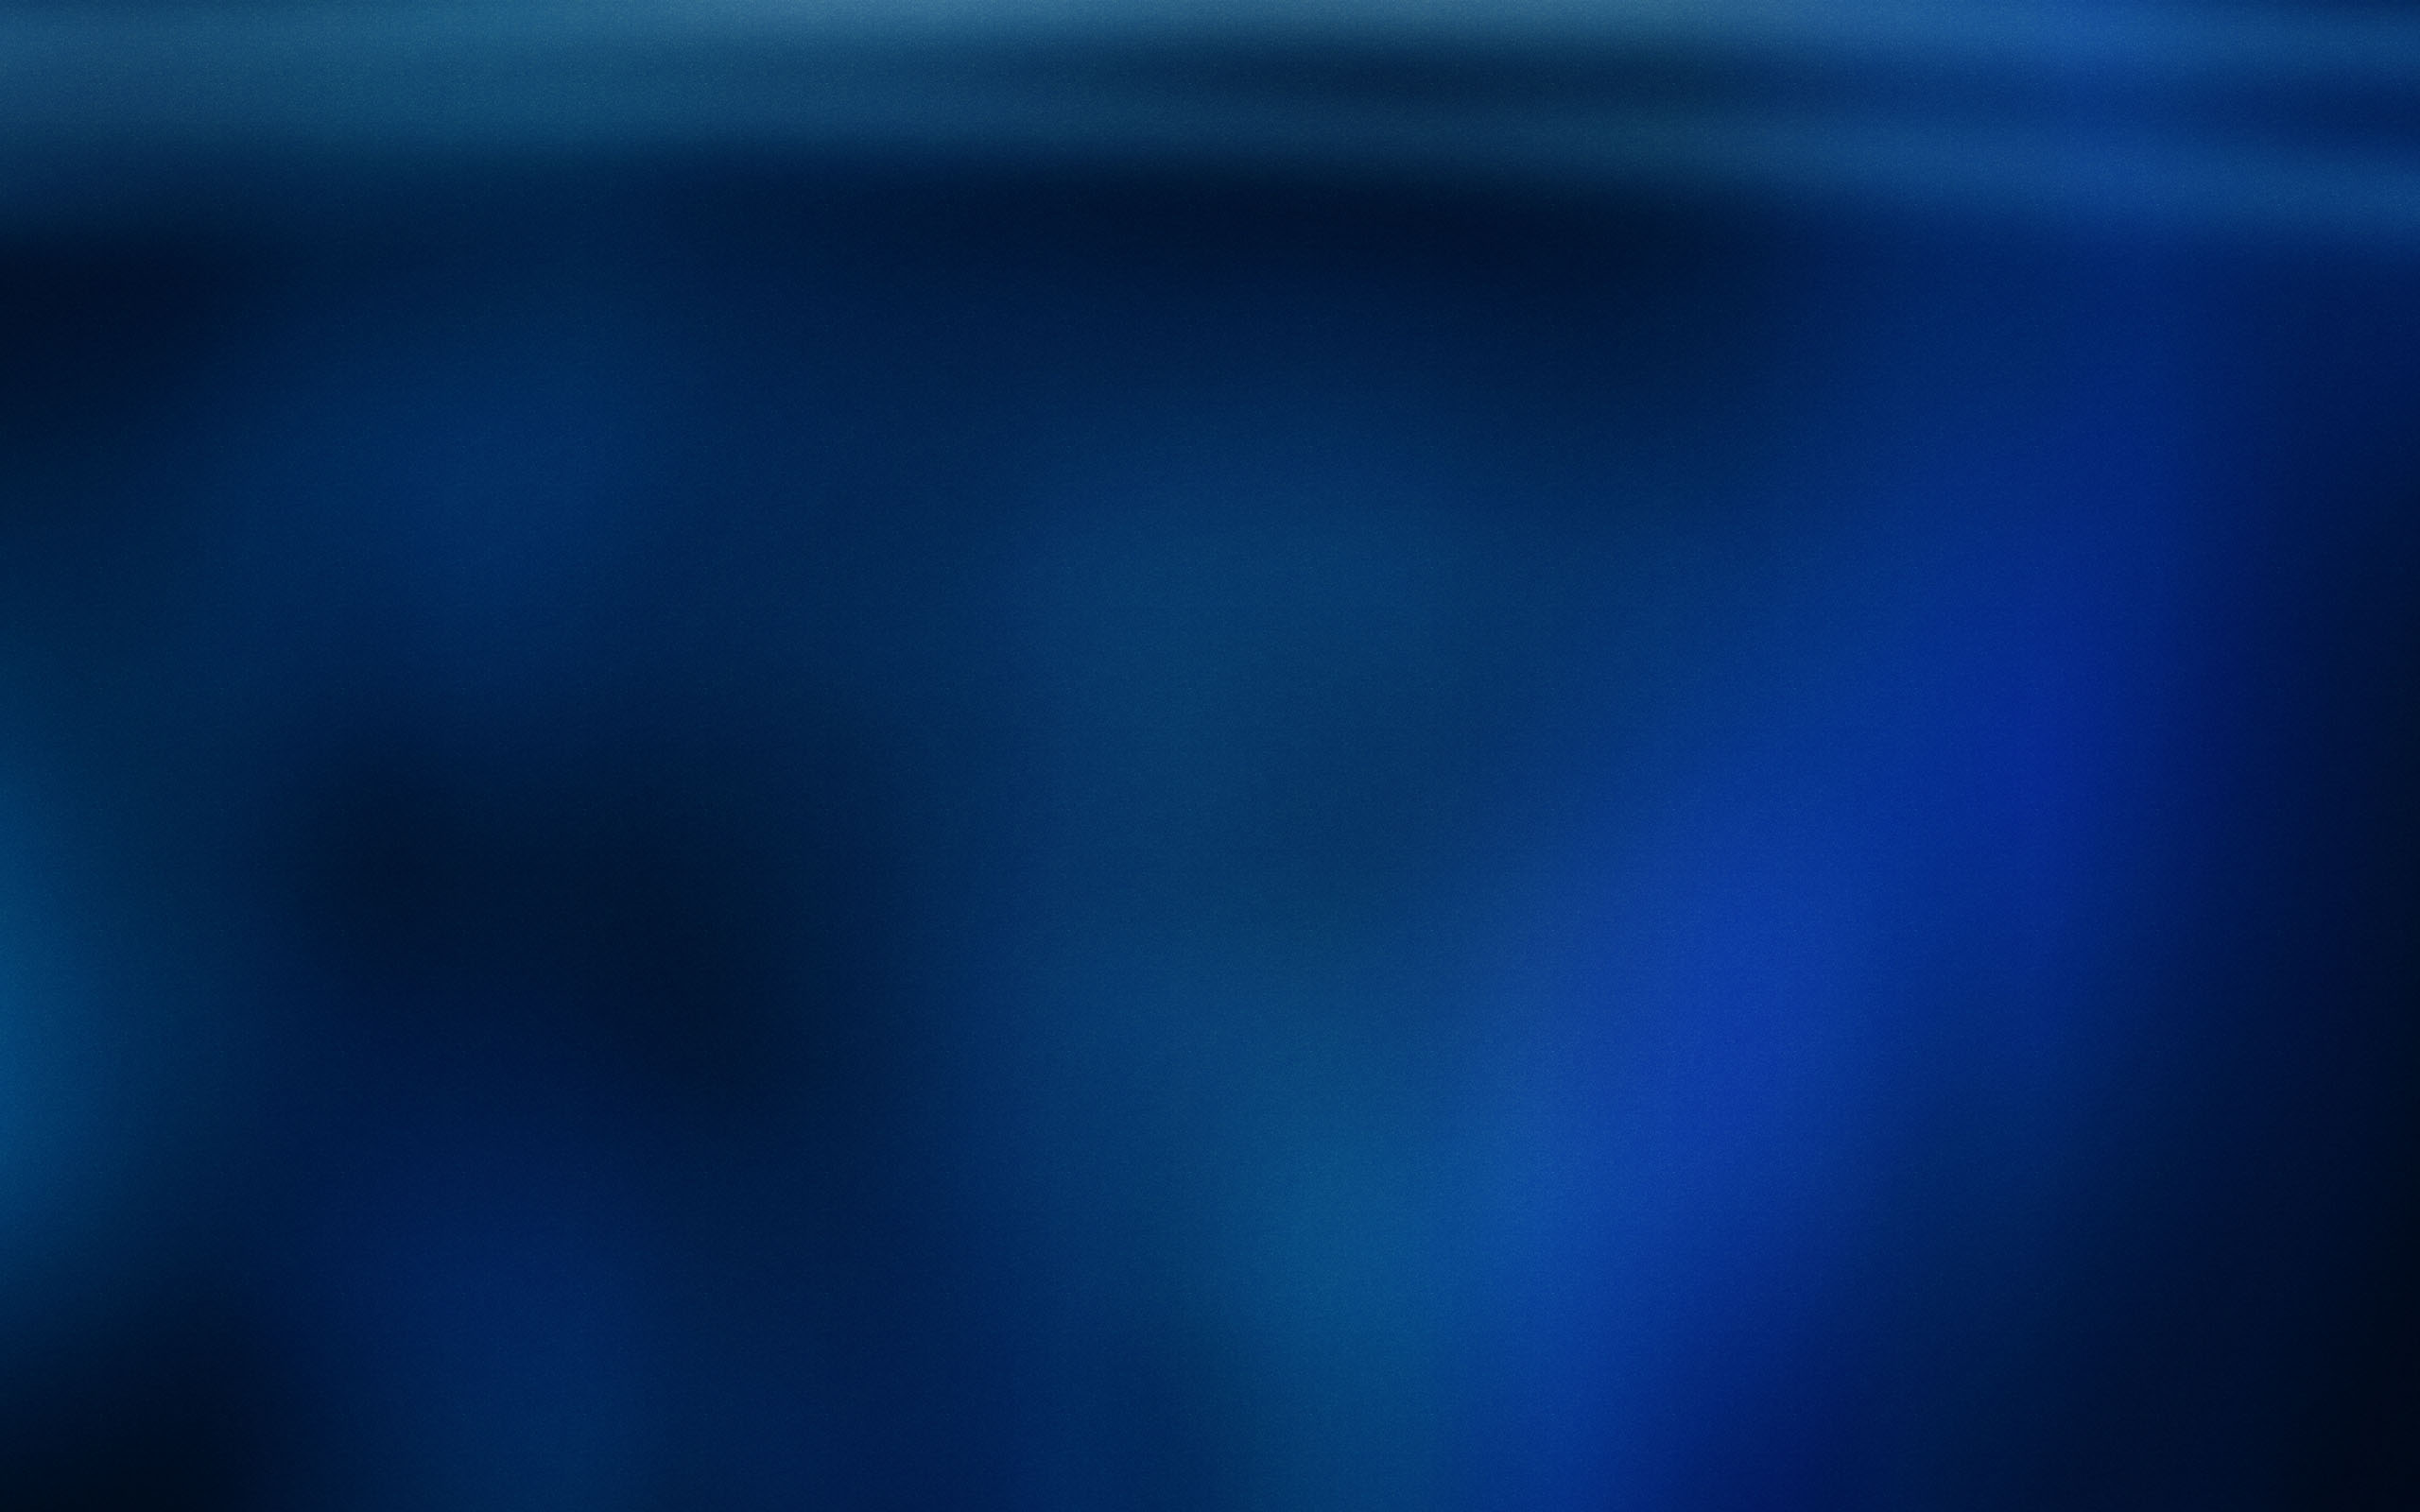 Desktop Wallpapers HD Abstract Blue Desktop Background Mac Abstract 2560x1600